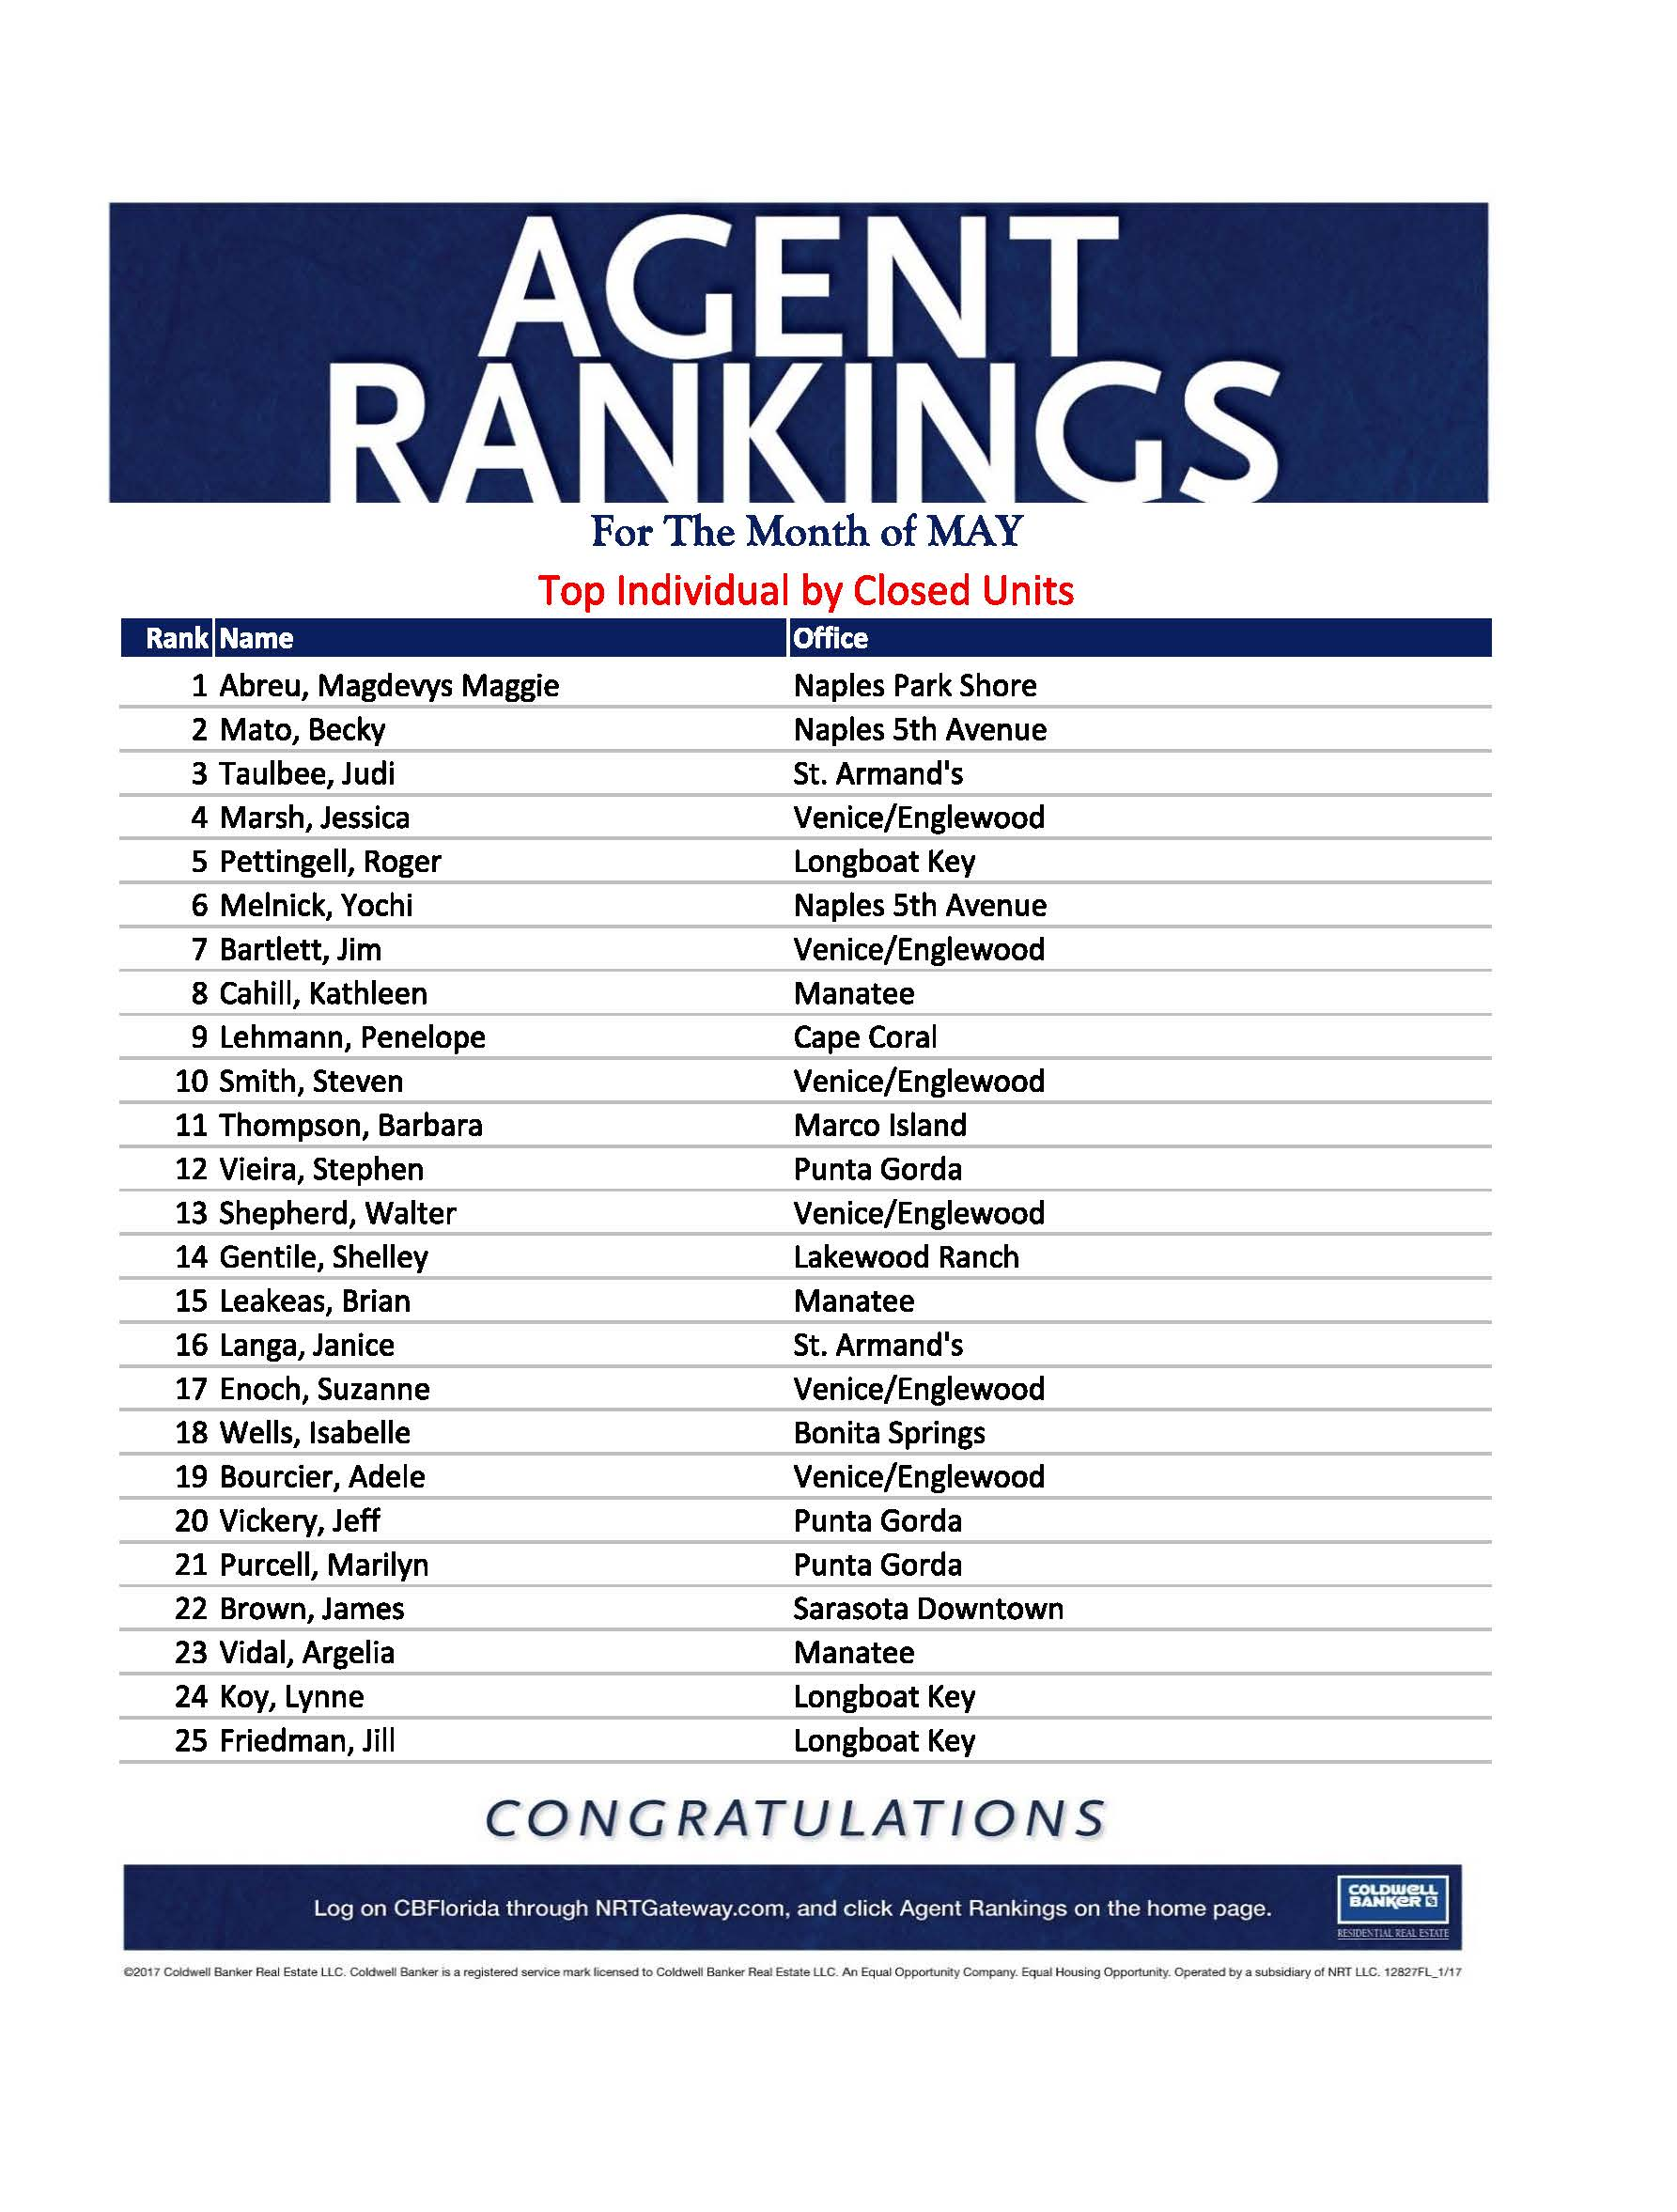 Top Ranking Individual Agents in May 2017 For Coldwell Banker in the SWFL Areas, See Penny Lehmann in Cape Coral, Florida